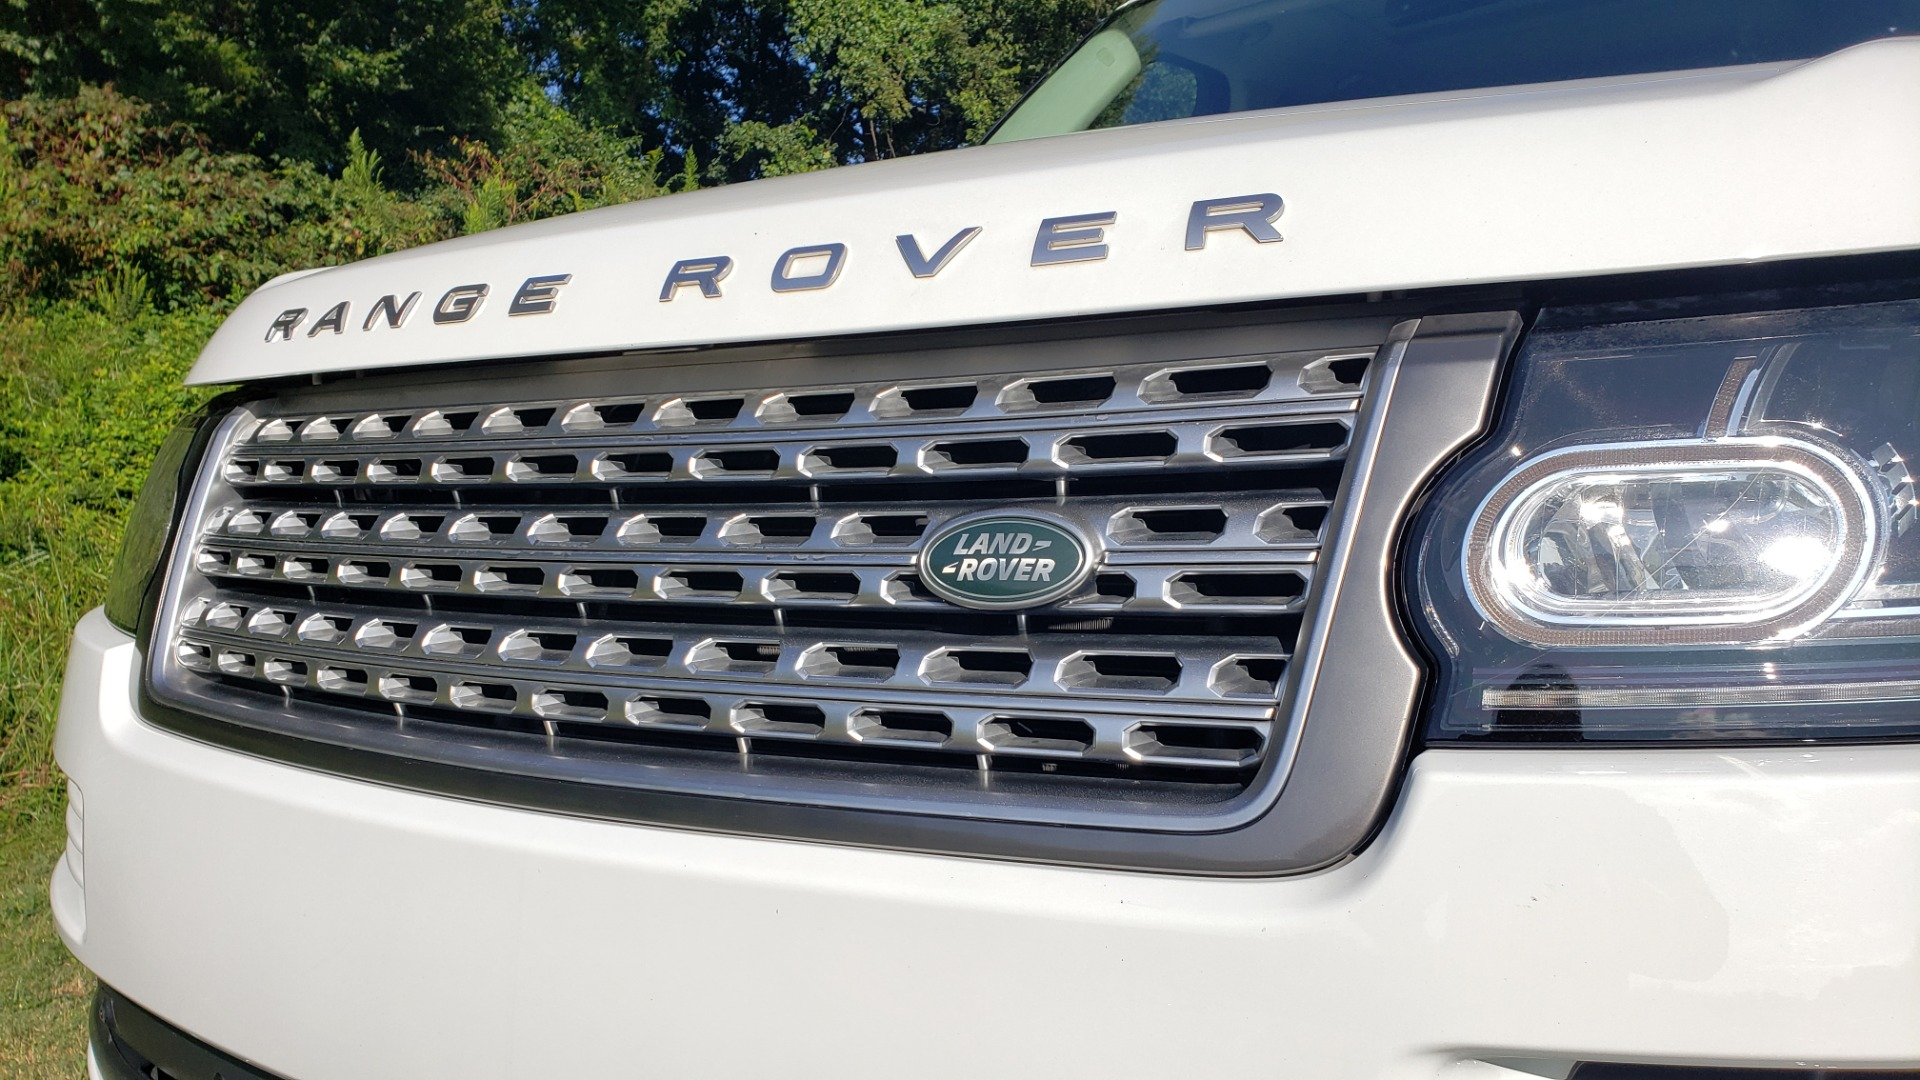 Used 2015 Land Rover Range Rover Supercharged for sale Sold at Formula Imports in Charlotte NC 28227 13